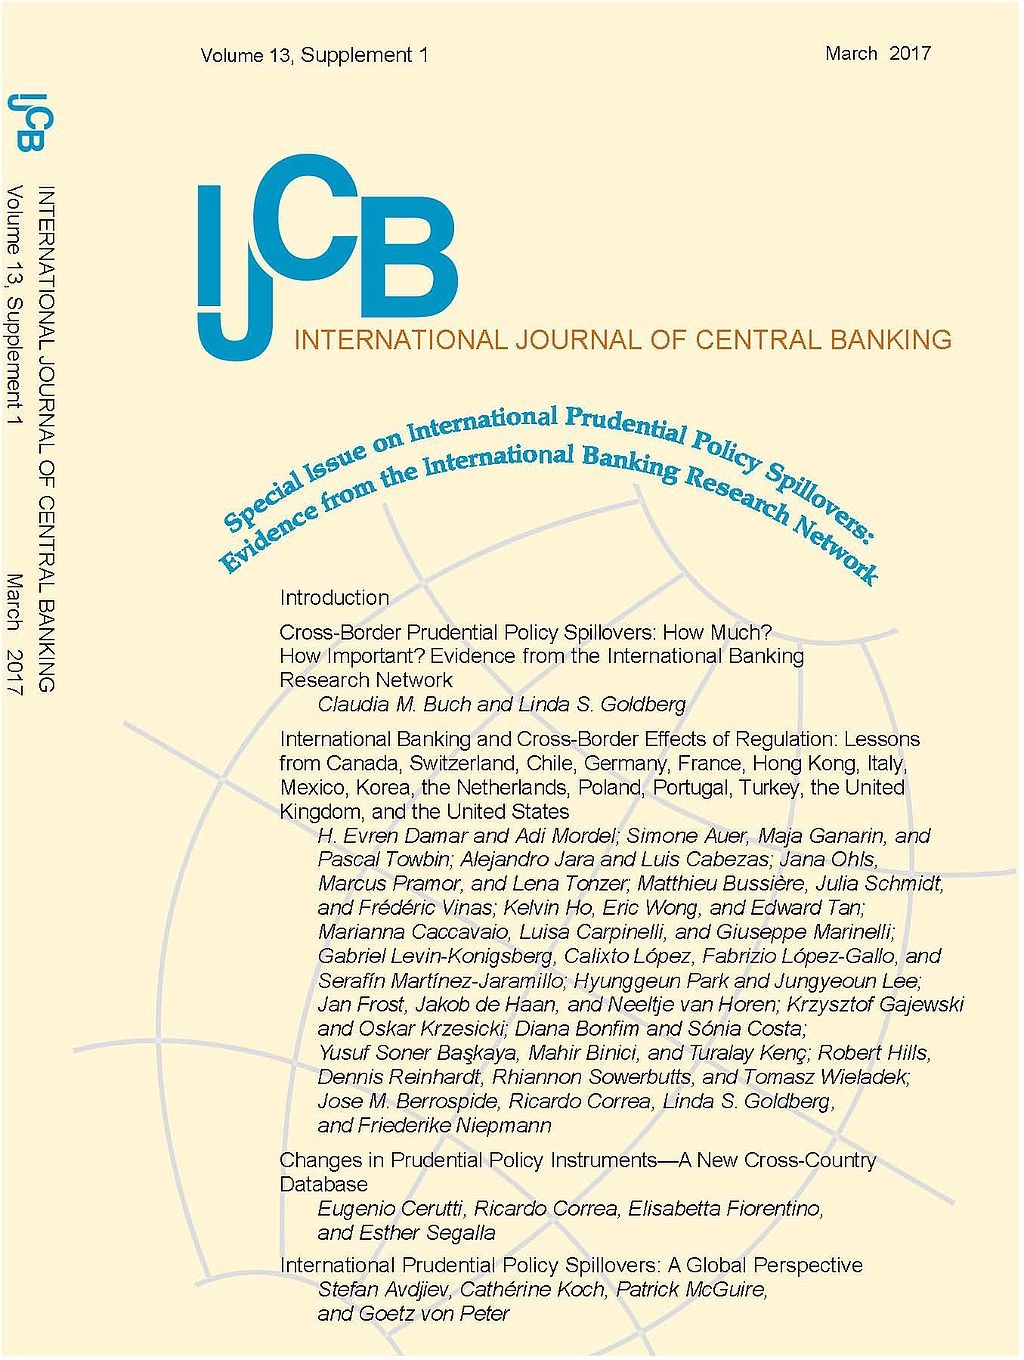 cover_international-journal-of-central-banking.jpg